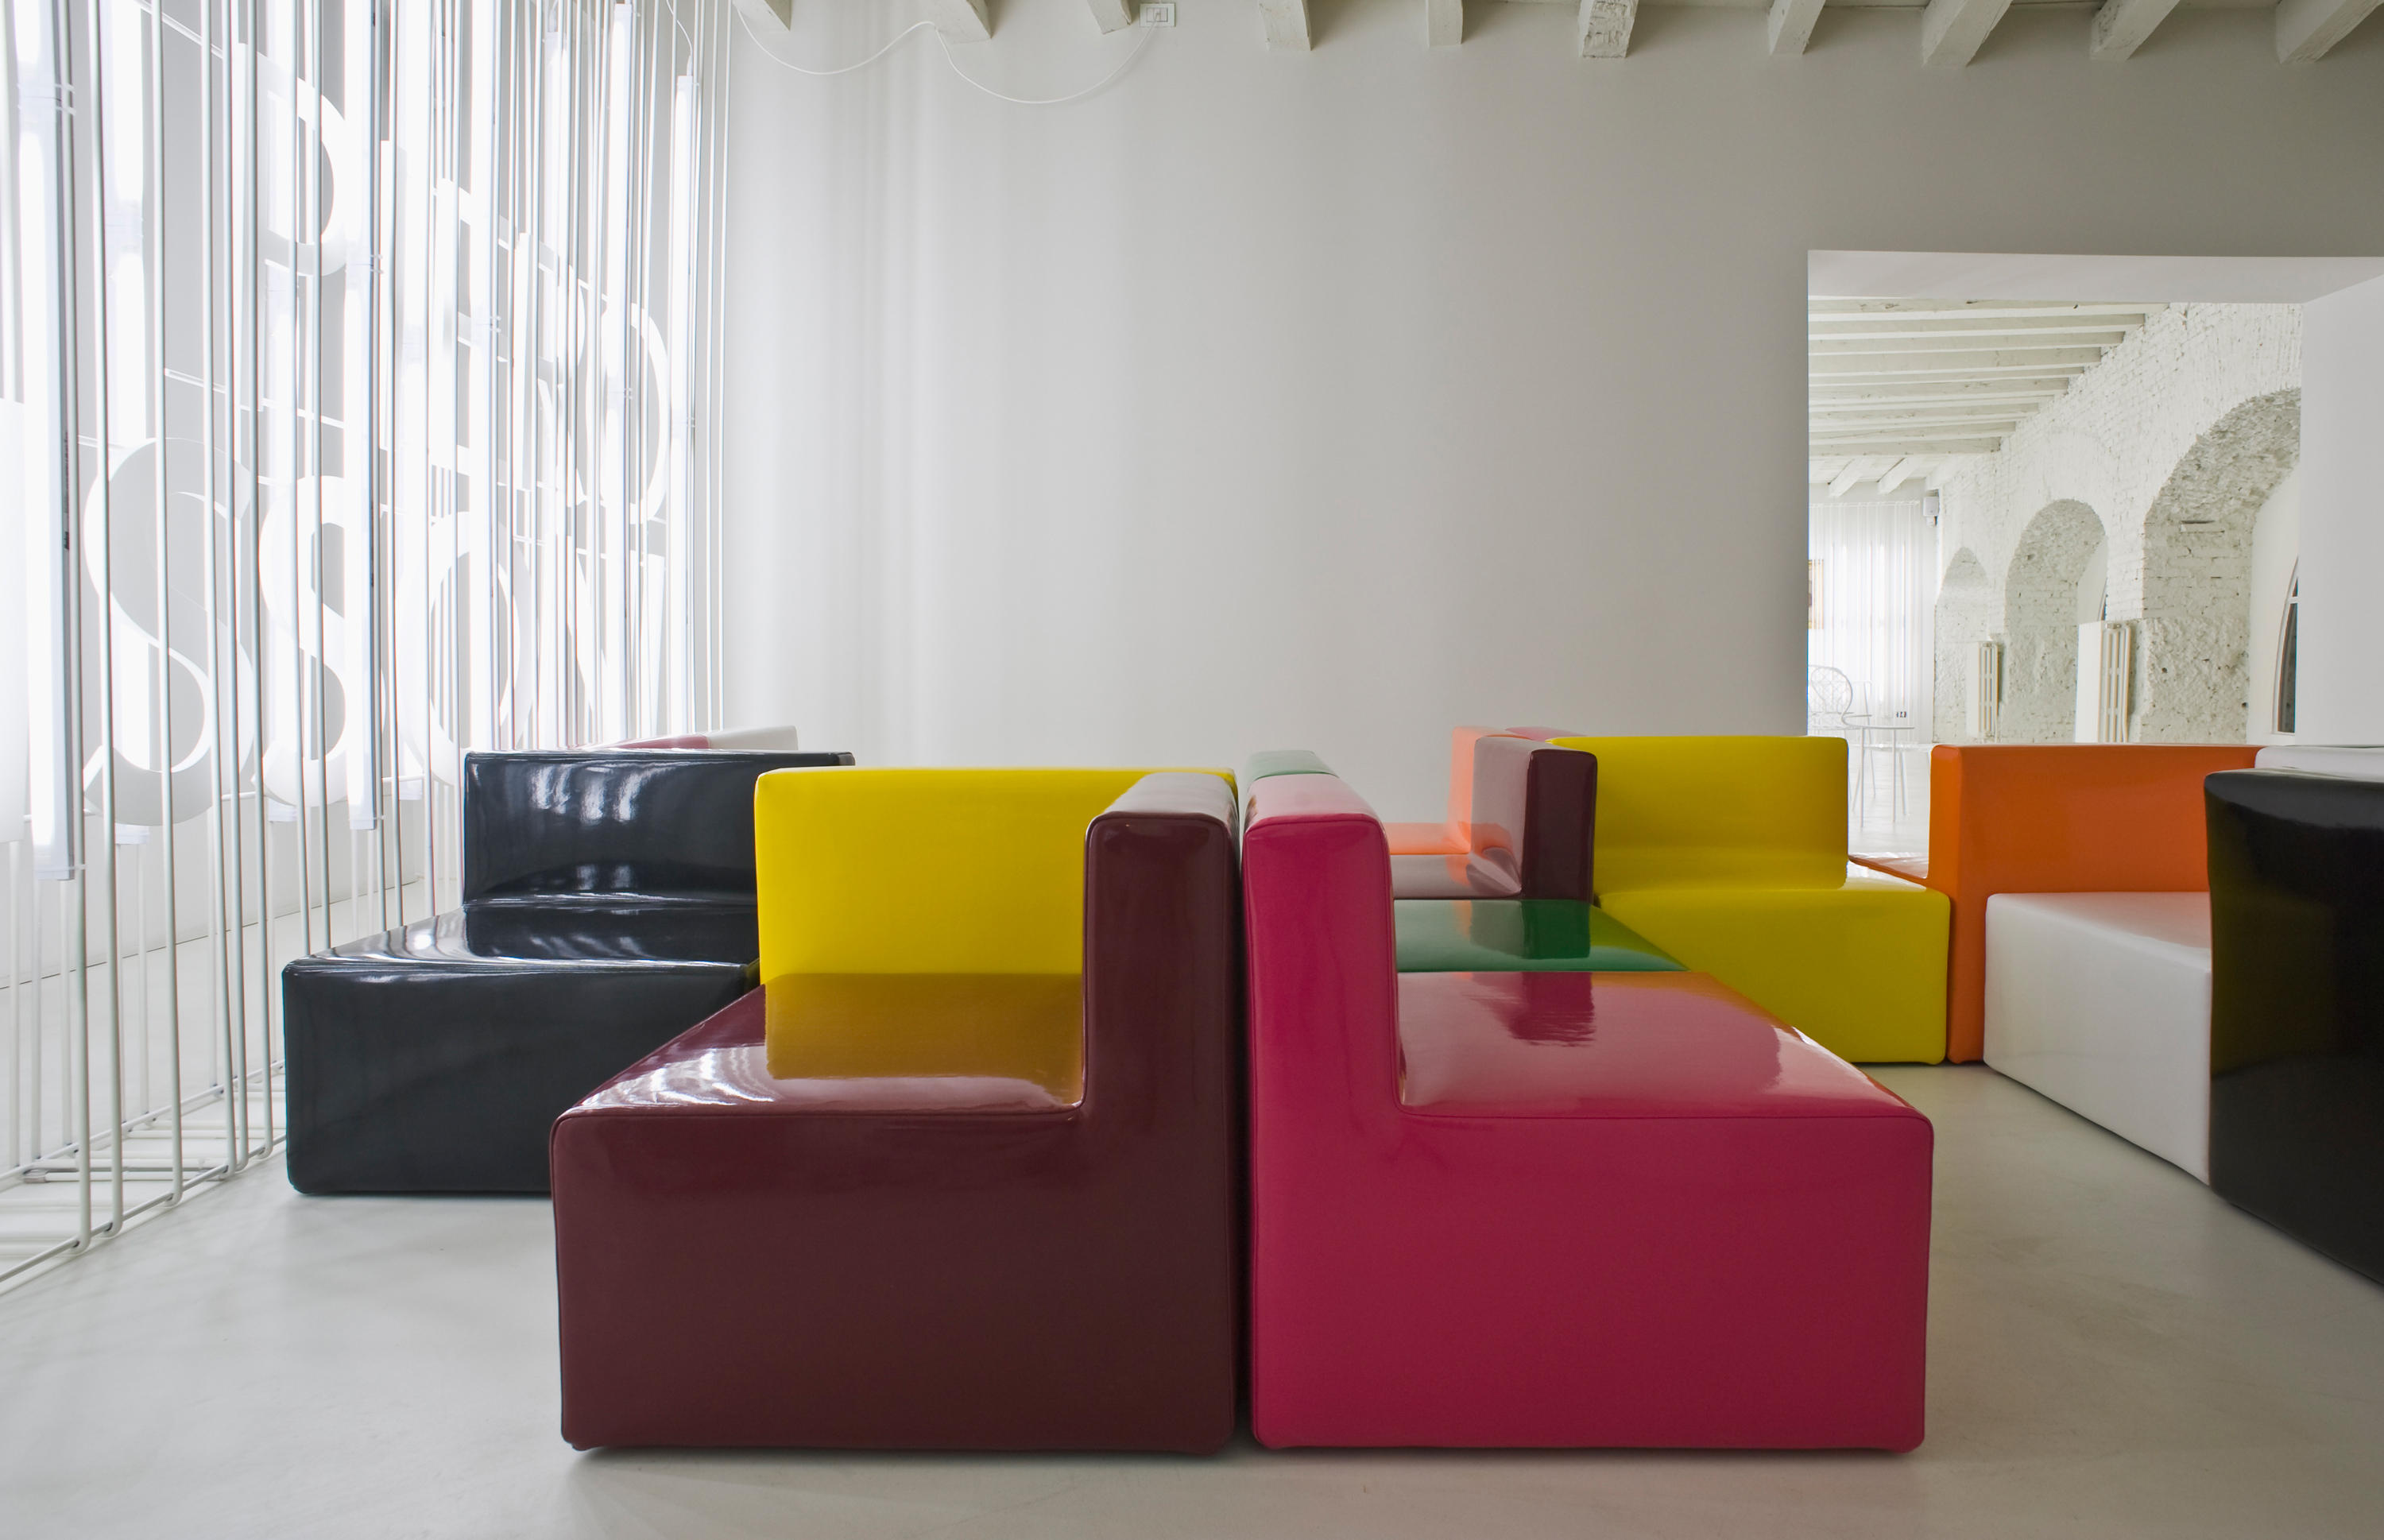 Cabrio Modular Seating Systems From Living Divani Architonic